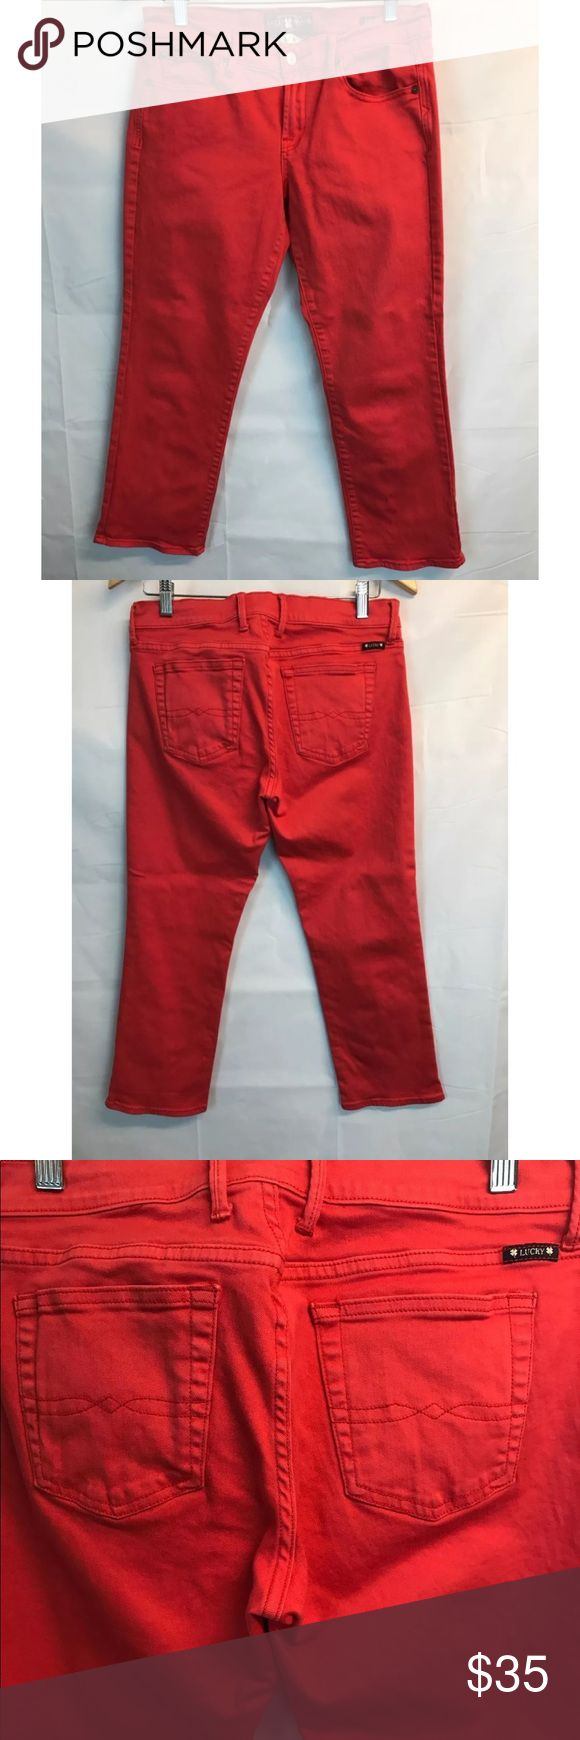 "Lucky Brand Sweet n' Crop Pants Denim Red Jeans 8 Lucky Brand Sweet n' Crop Pants Woman Red Jeans Sz 8 29 26 Inseam Denim Size: 8 / 29 Waist (across): 16""  Rise: 9.5"" Inseam: 26"",  Leg opening: 7.5""  98% Cotton, 2% Elastane Good condition. Lucky Brand Jeans Ankle & Cropped"